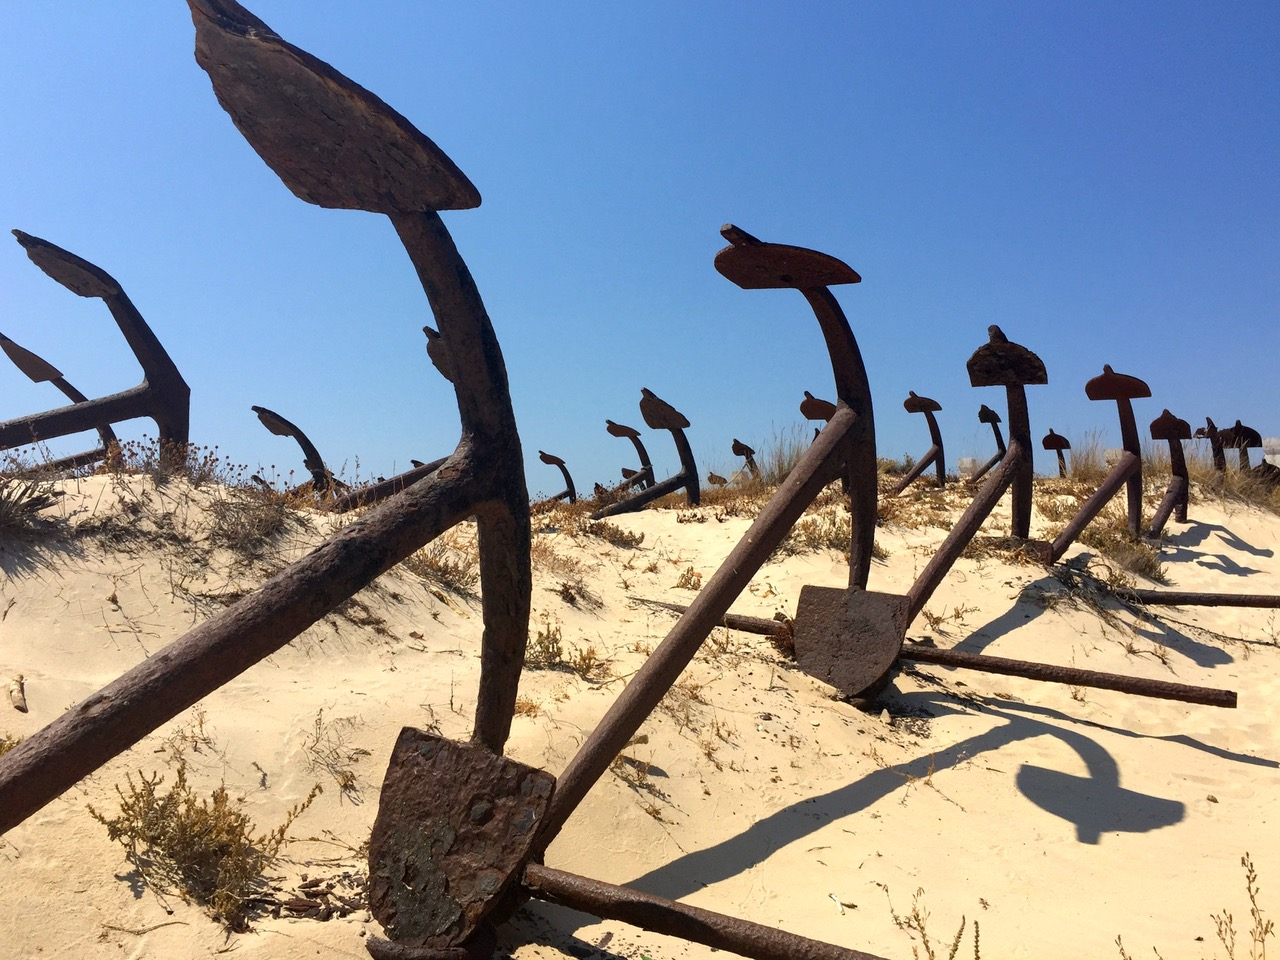 The Anchors Graveyard at Barril Beach, Algarve, Portugal